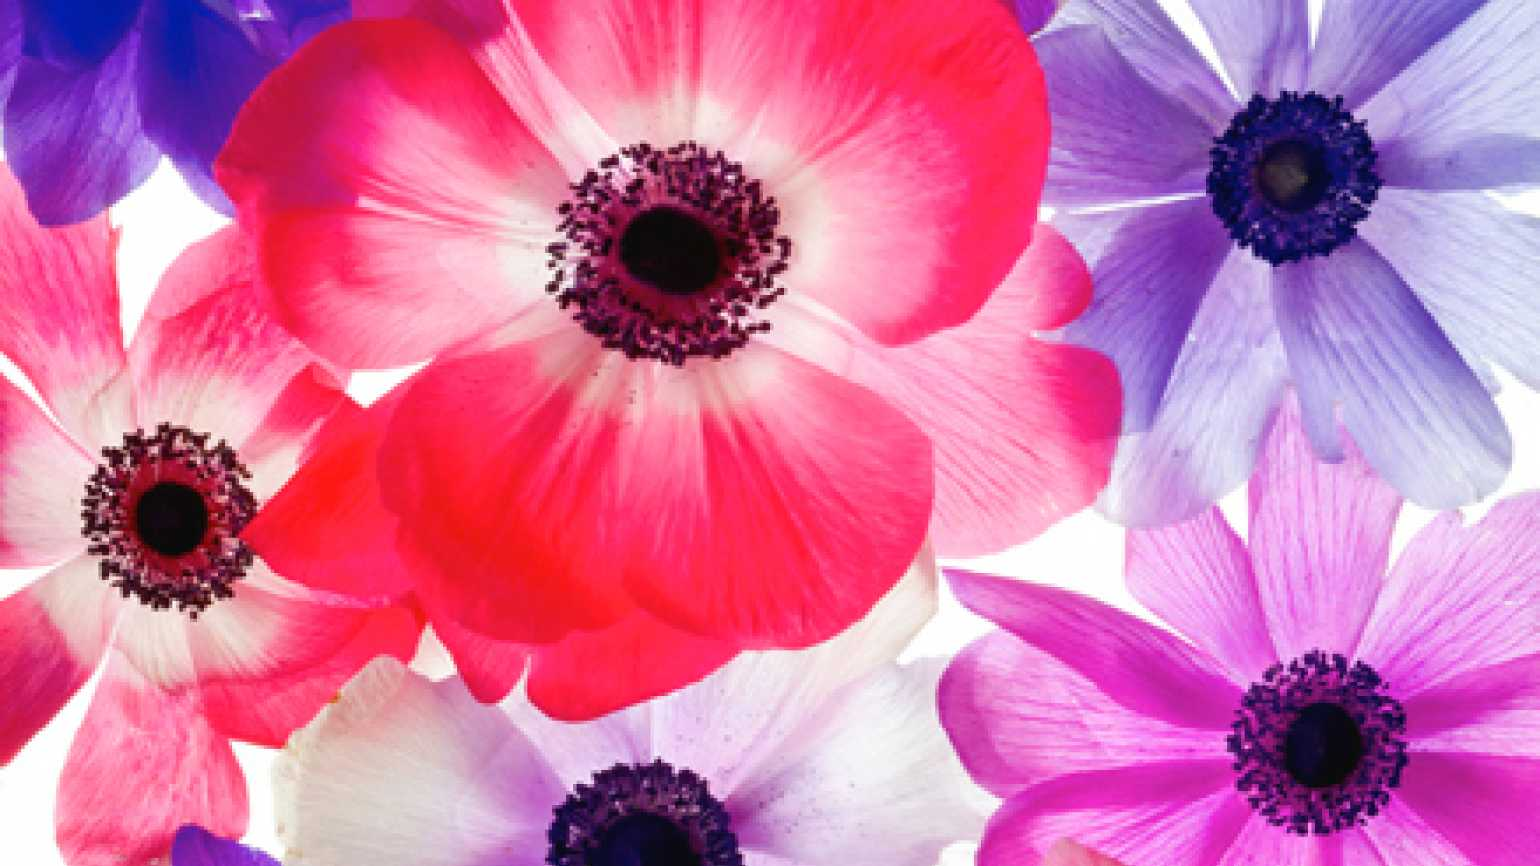 picture of flowers: picture of flowers: (Photo credit: Klaus Lucka)